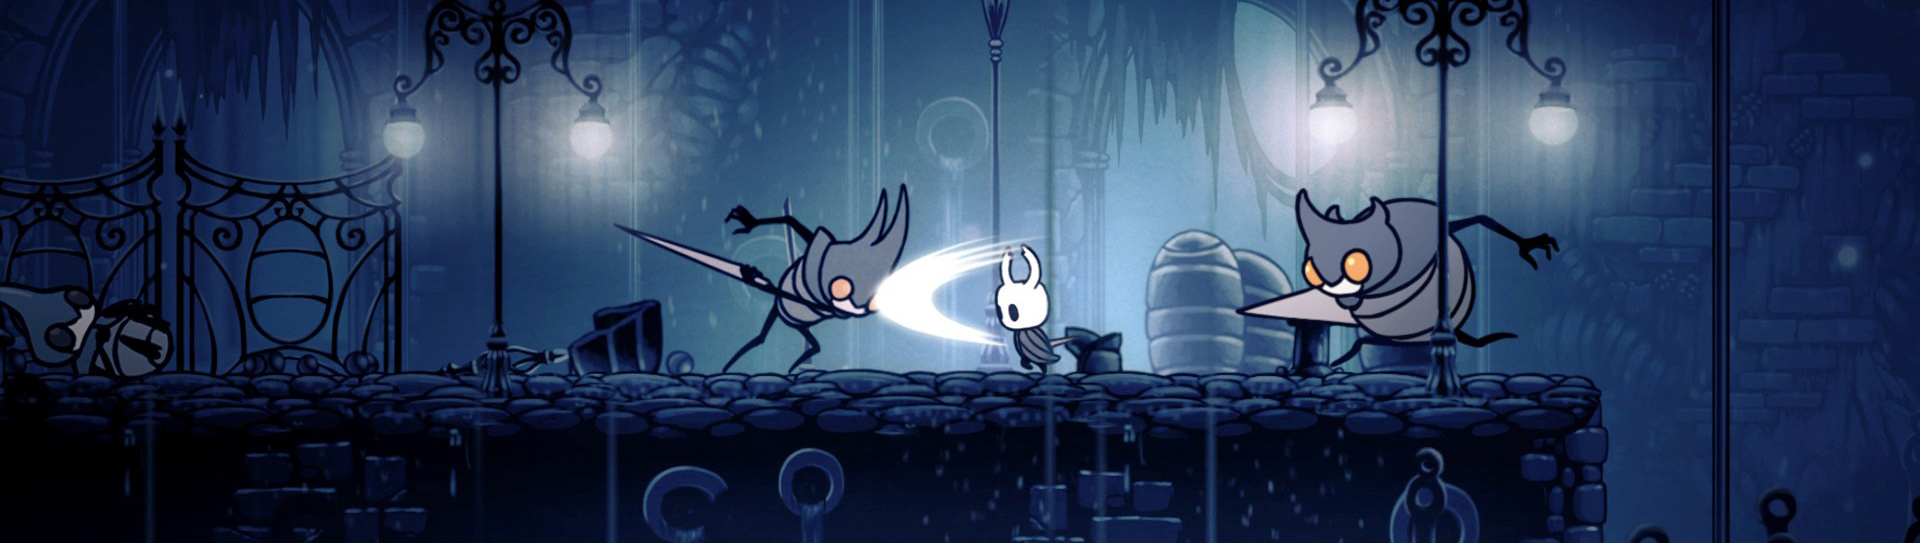 Hollow_knight16